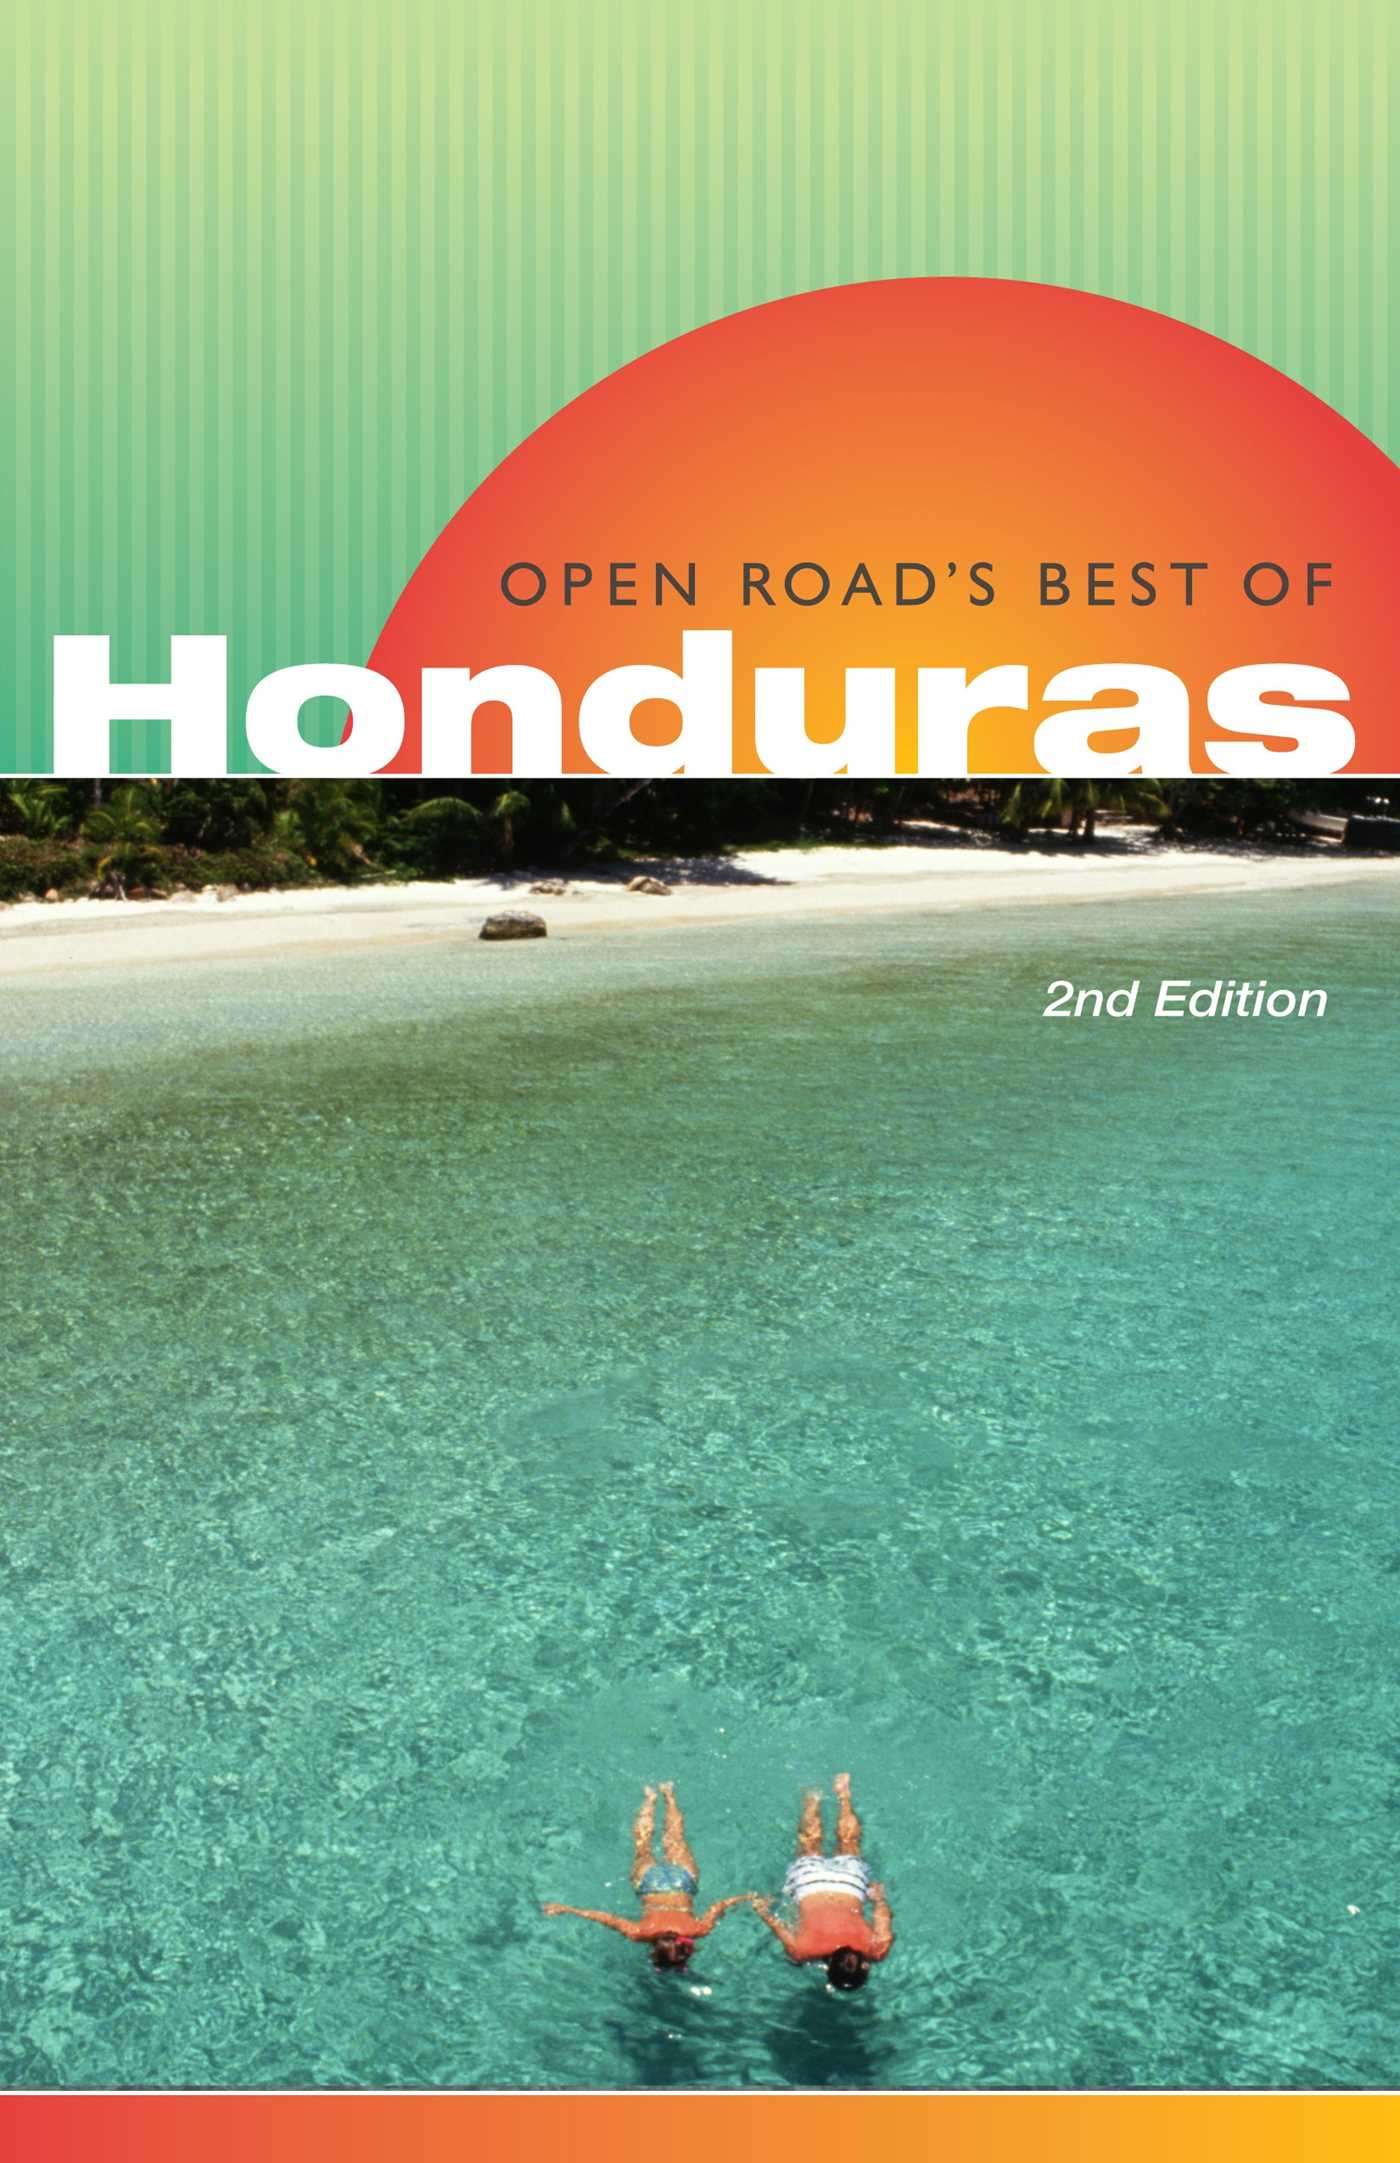 Open-roads-best-of-honduras-2nd-edition-9781593601690_hr